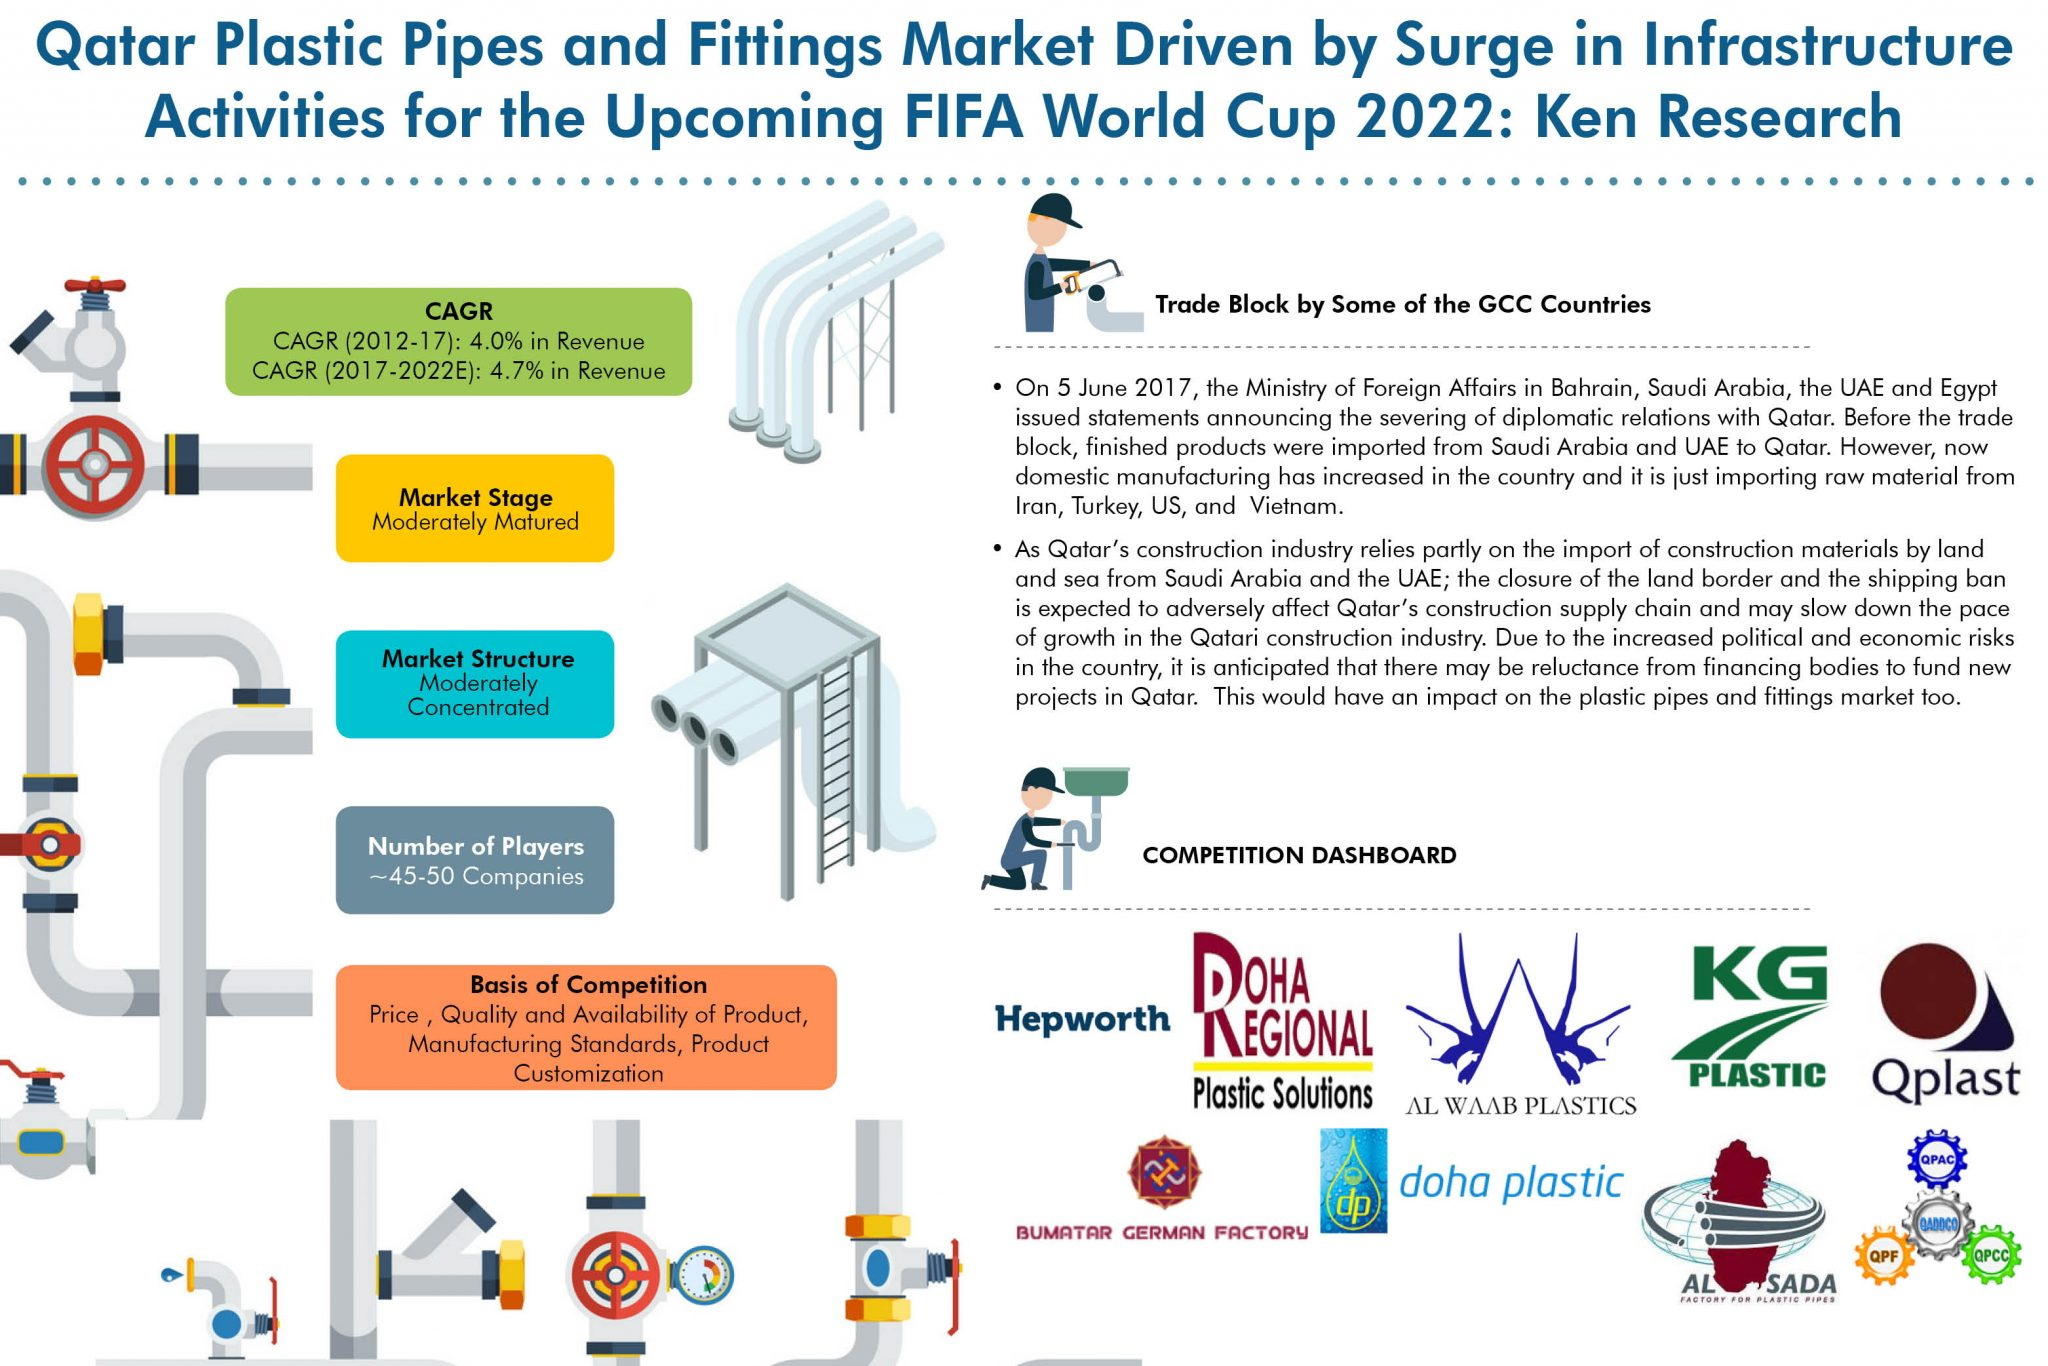 Qatar Plastic Pipes and Fittings Market